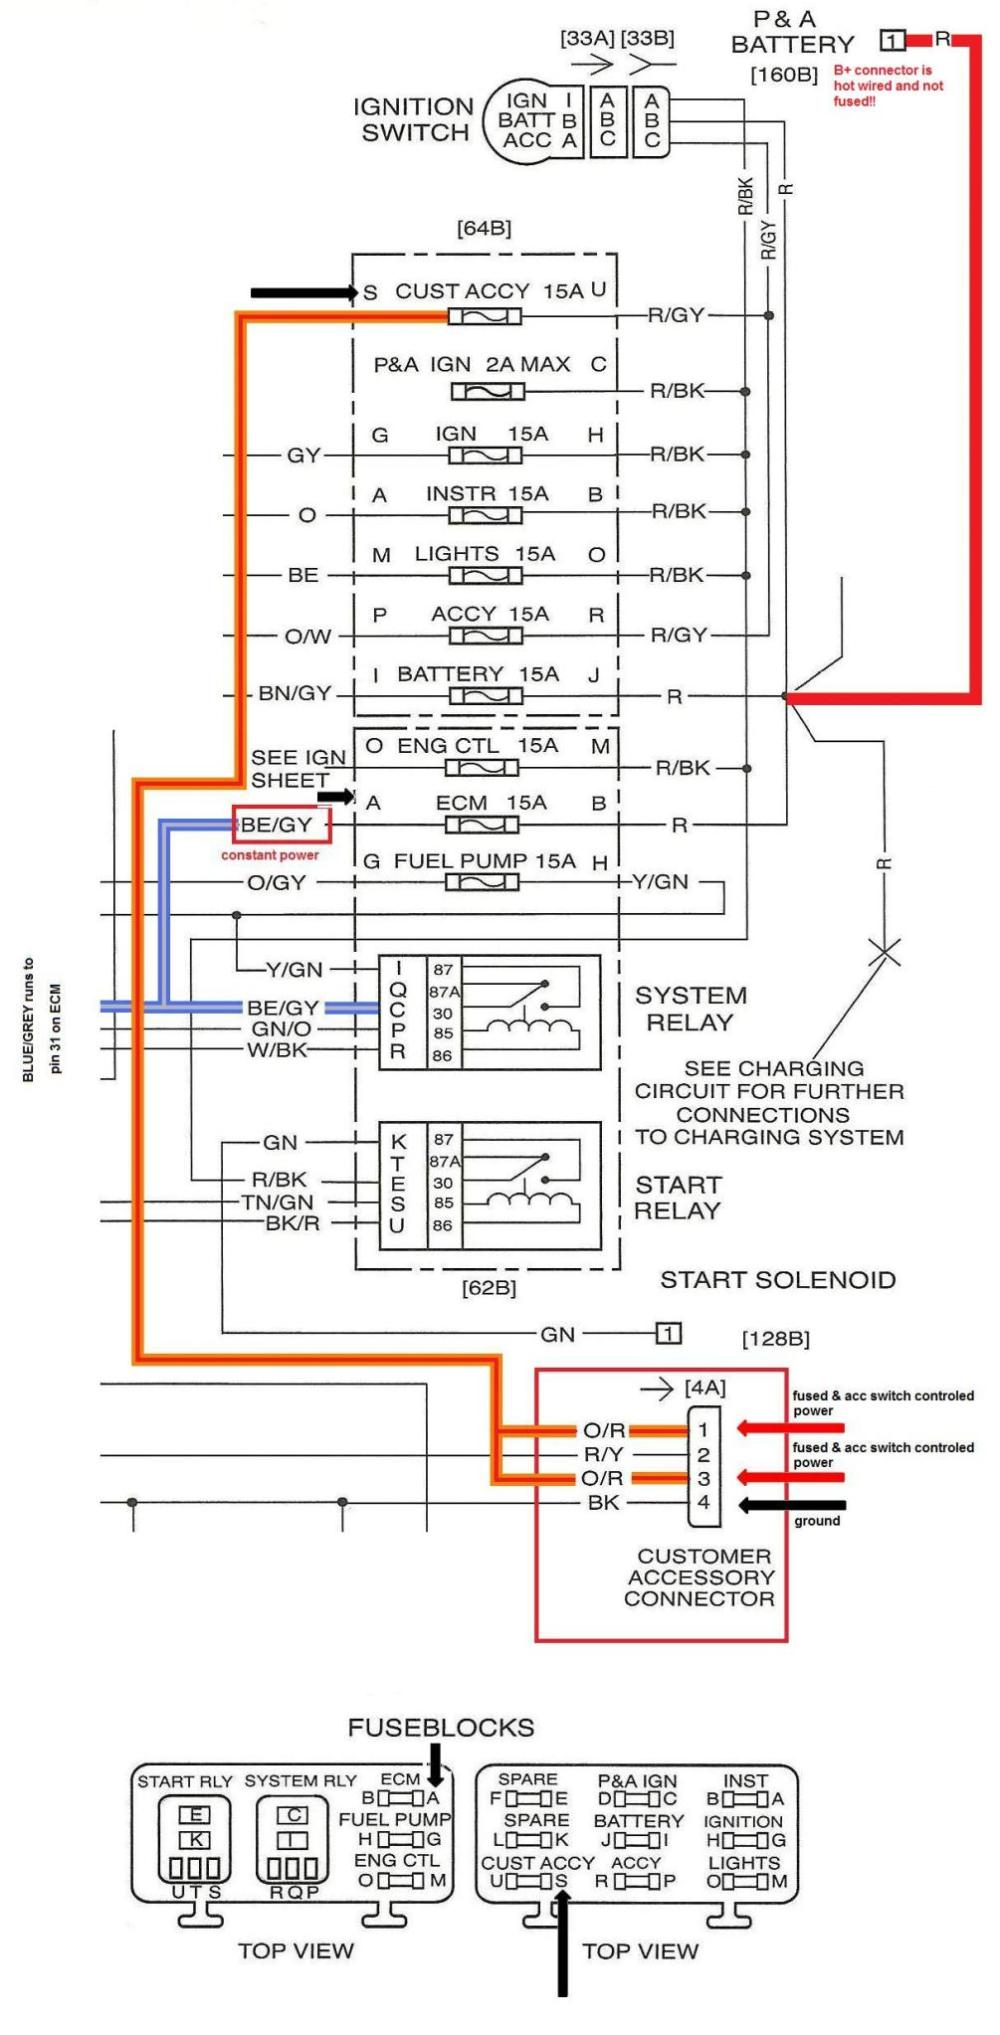 medium resolution of harley wiring diagram wires wiring diagram blogs harley davidson wiring harness diagram harley davidson electronic throttle wiring diagram